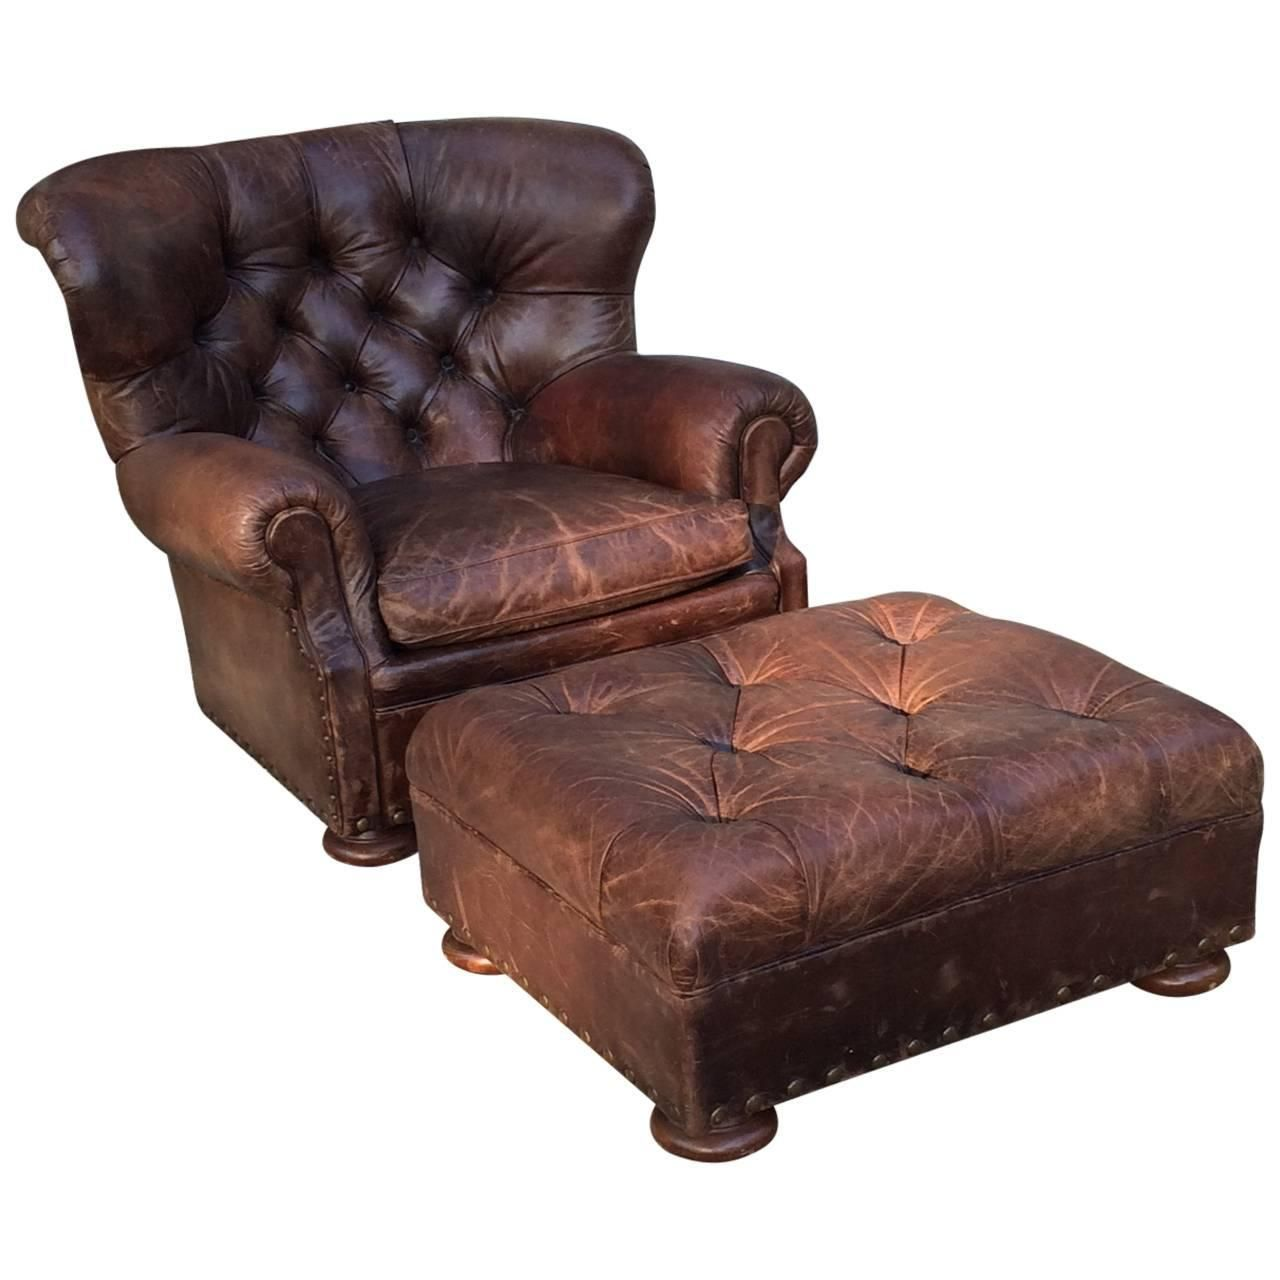 Handsome large ralph lauren button tufted club chair and